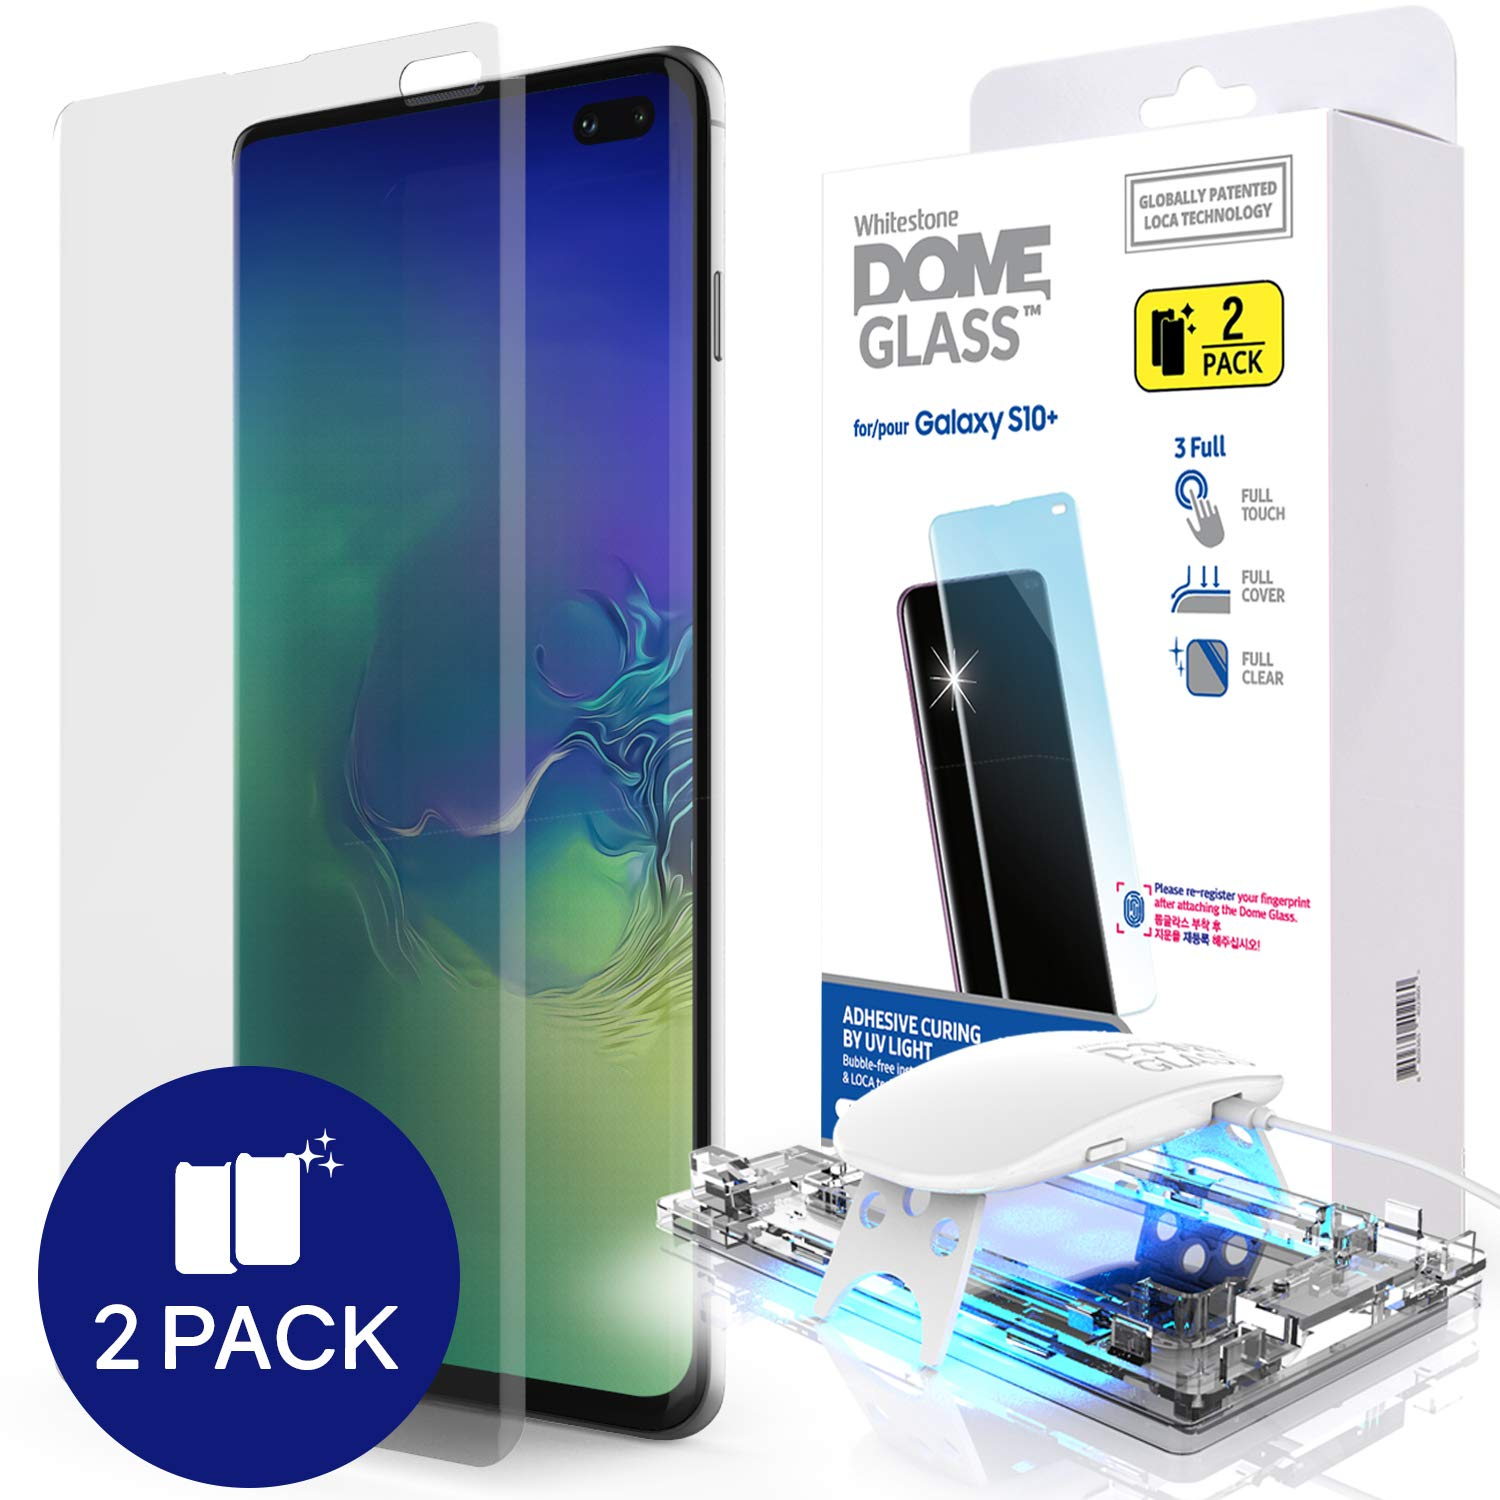 Galaxy S10 Plus Screen Protector, [Dome Glass] Full 3D Curved Edge Tempered Glass [Exclusive Solution for Ultrasonic Fingerprint] Easy Install Kit by Whitestone for Samsung Galaxy S10+ (2019) - 2 Pack by Dome Glass